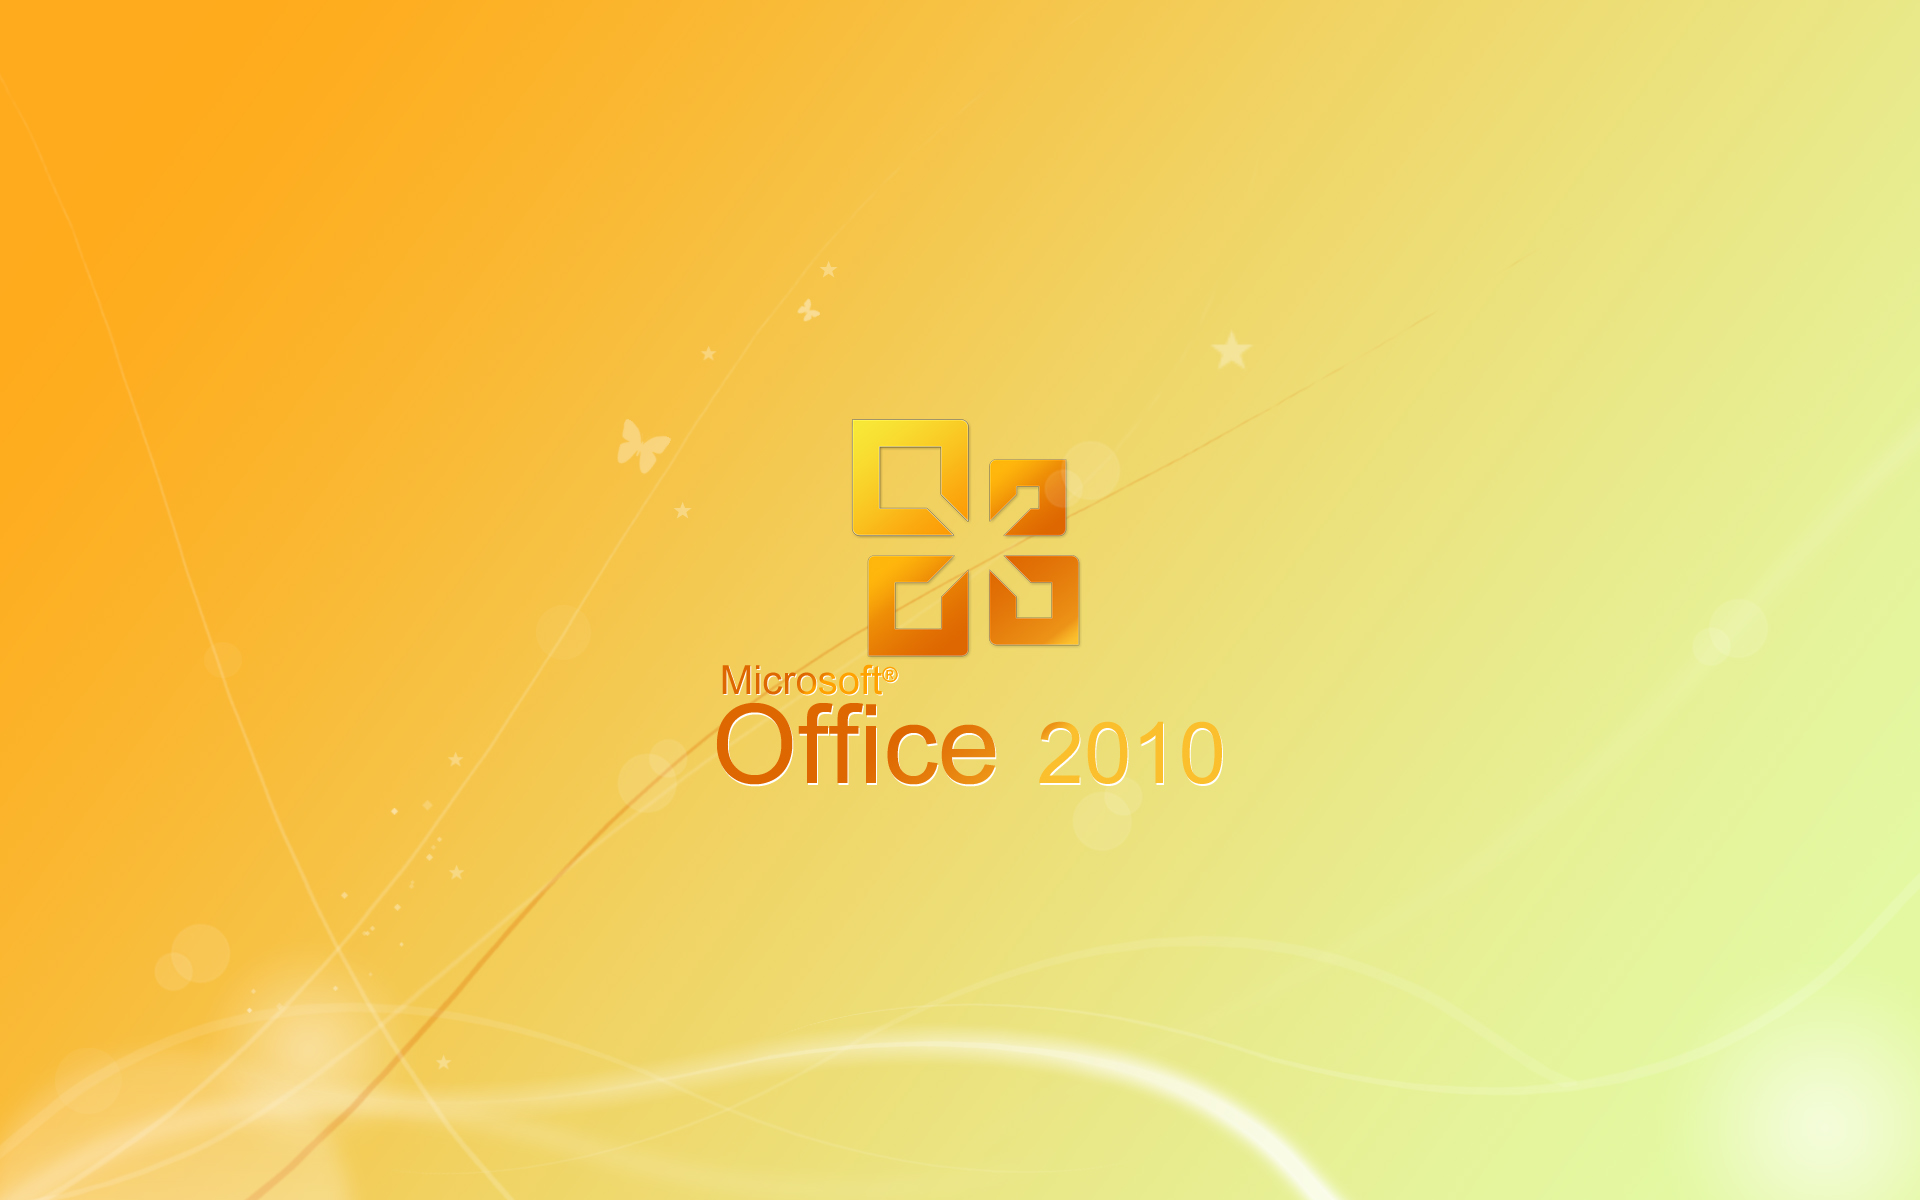 Office 2010 Wallpaper by Mr-Thien